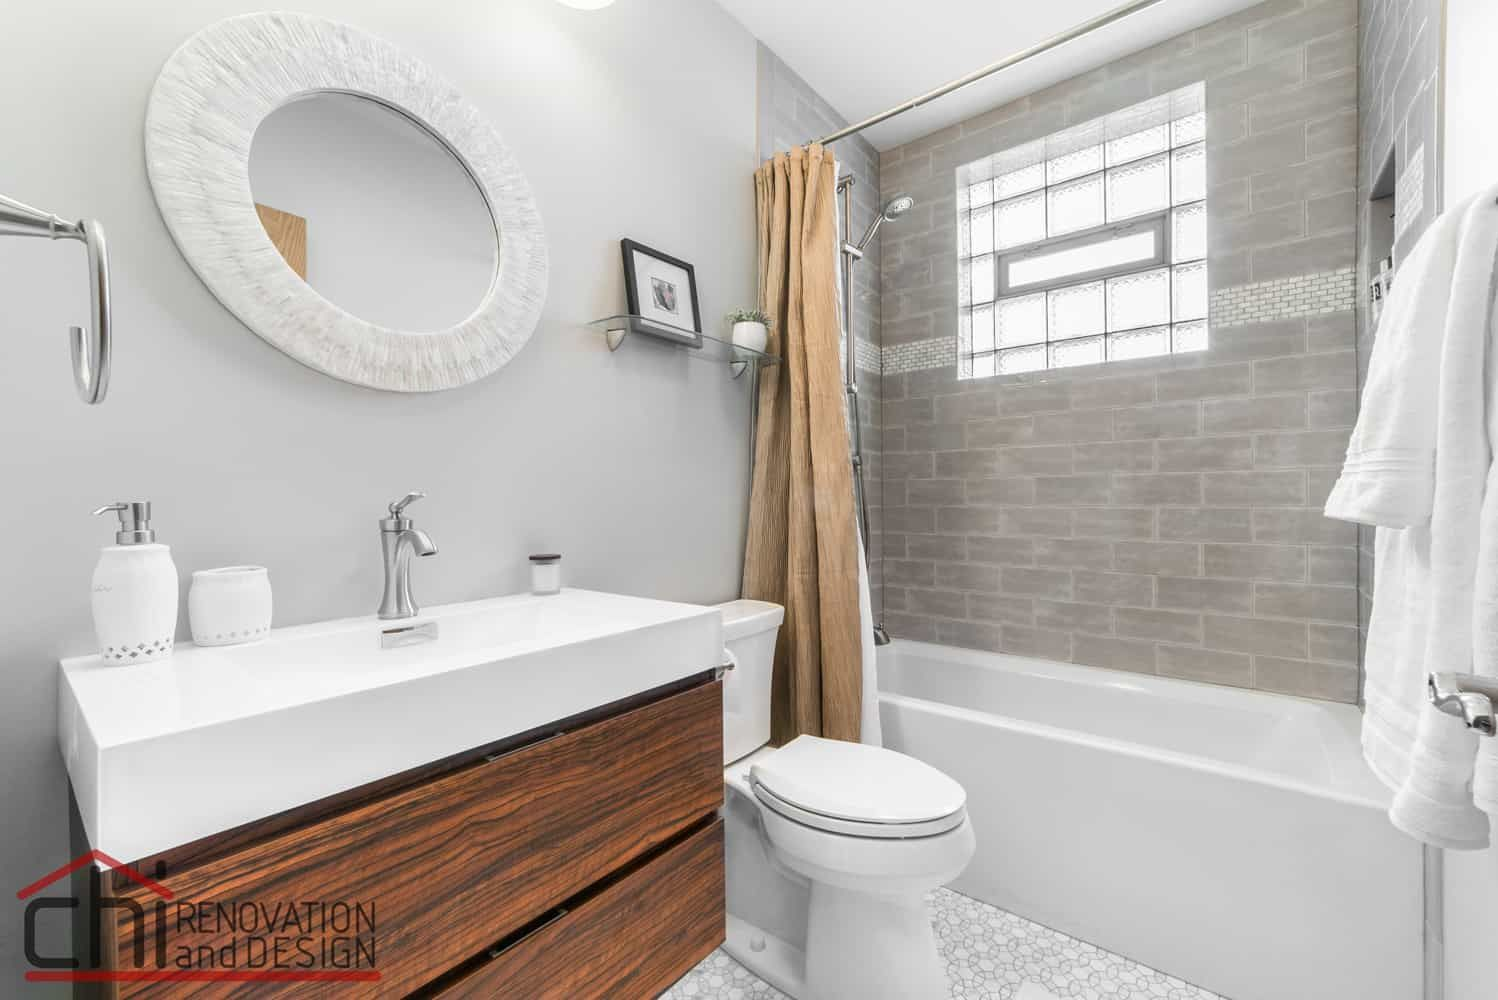 This Chicago Basement Bathroom Aimed To Be Swanky Yet Affordable The Fresh Whites Bathroom Remodel Small Budget Bathrooms Remodel Basement Bathroom Remodeling